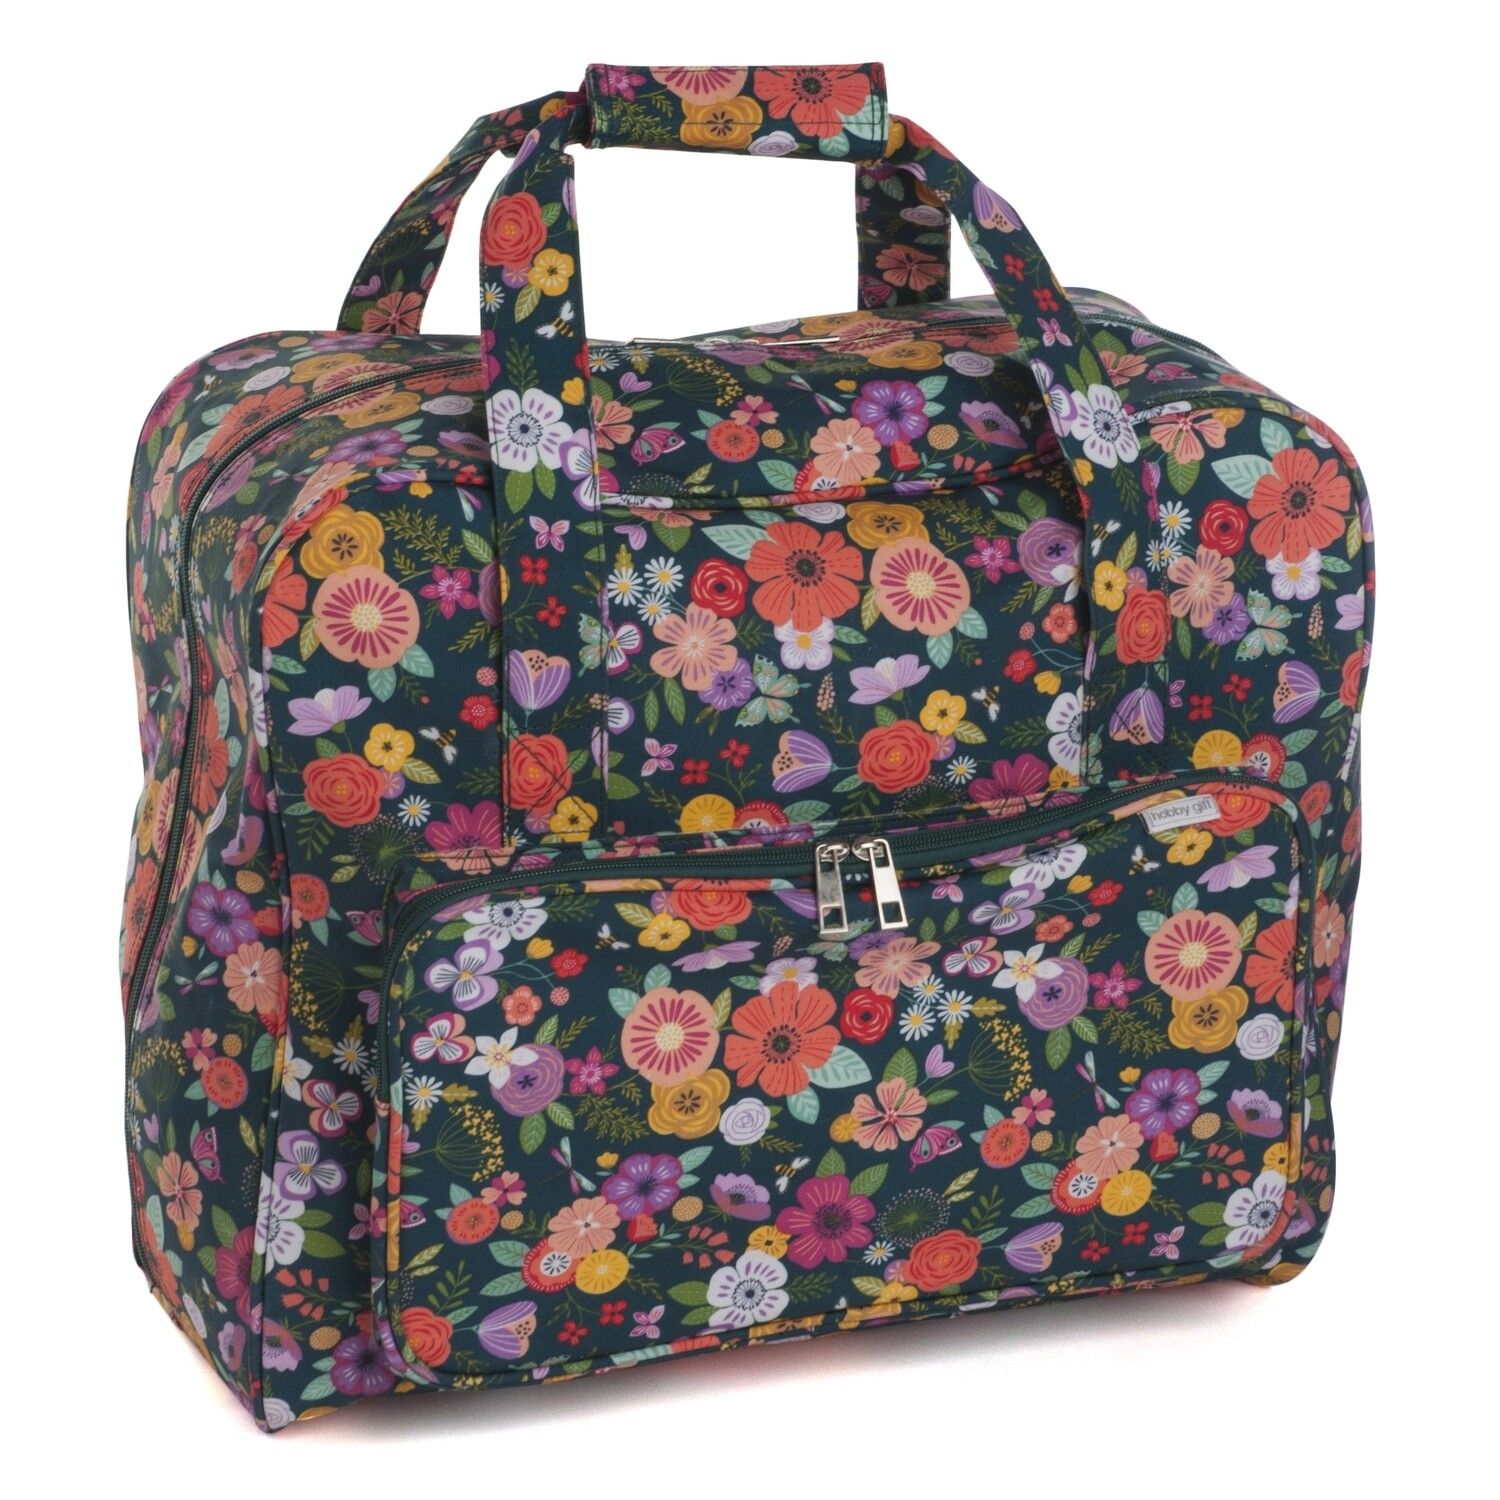 Sewing Machine Bag - Floral Garden Teal